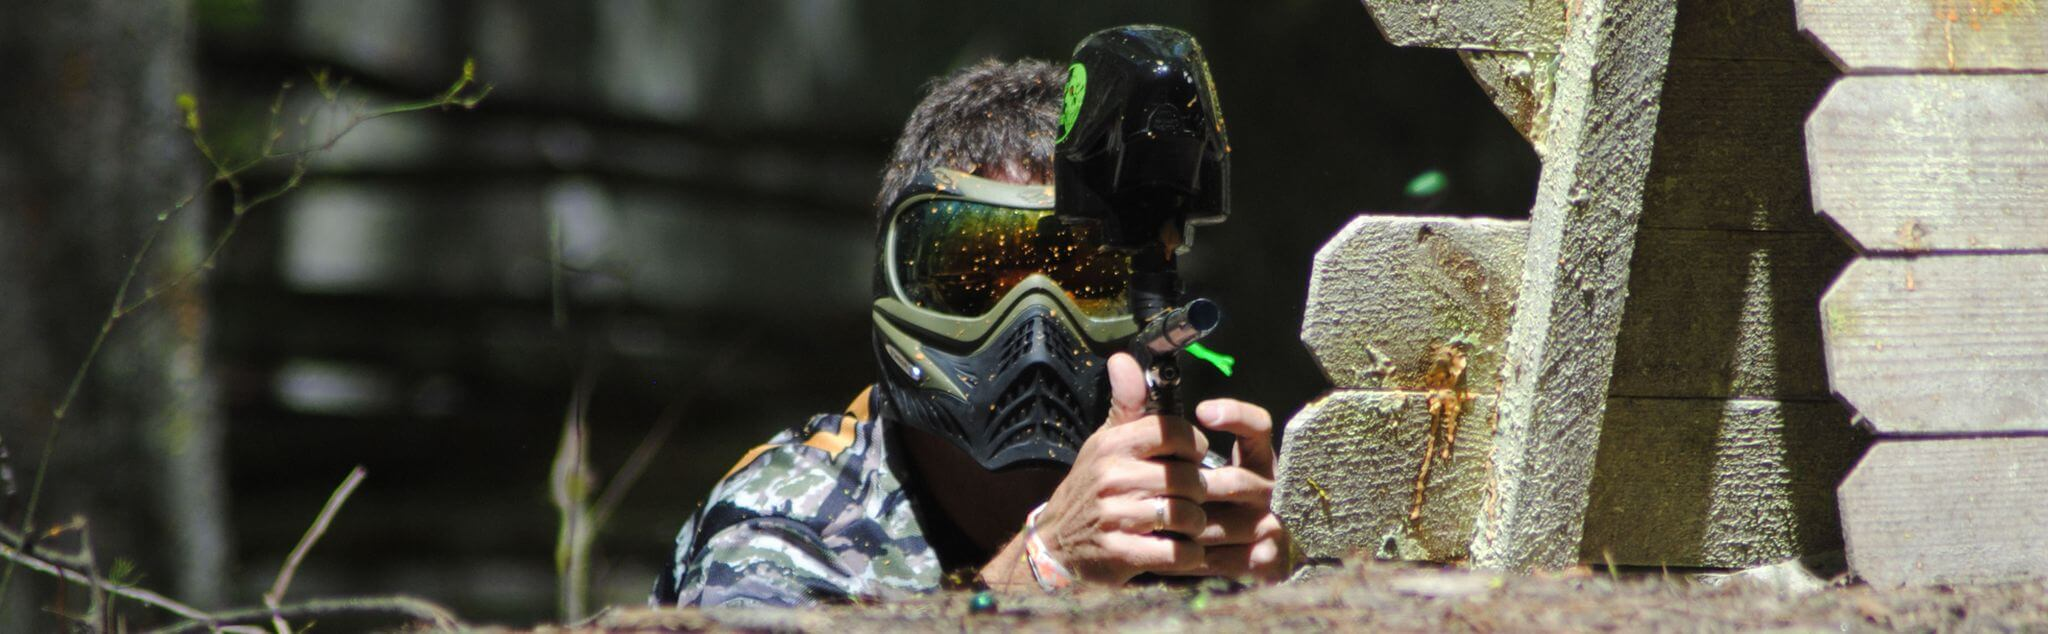 Paintball a Cagliari